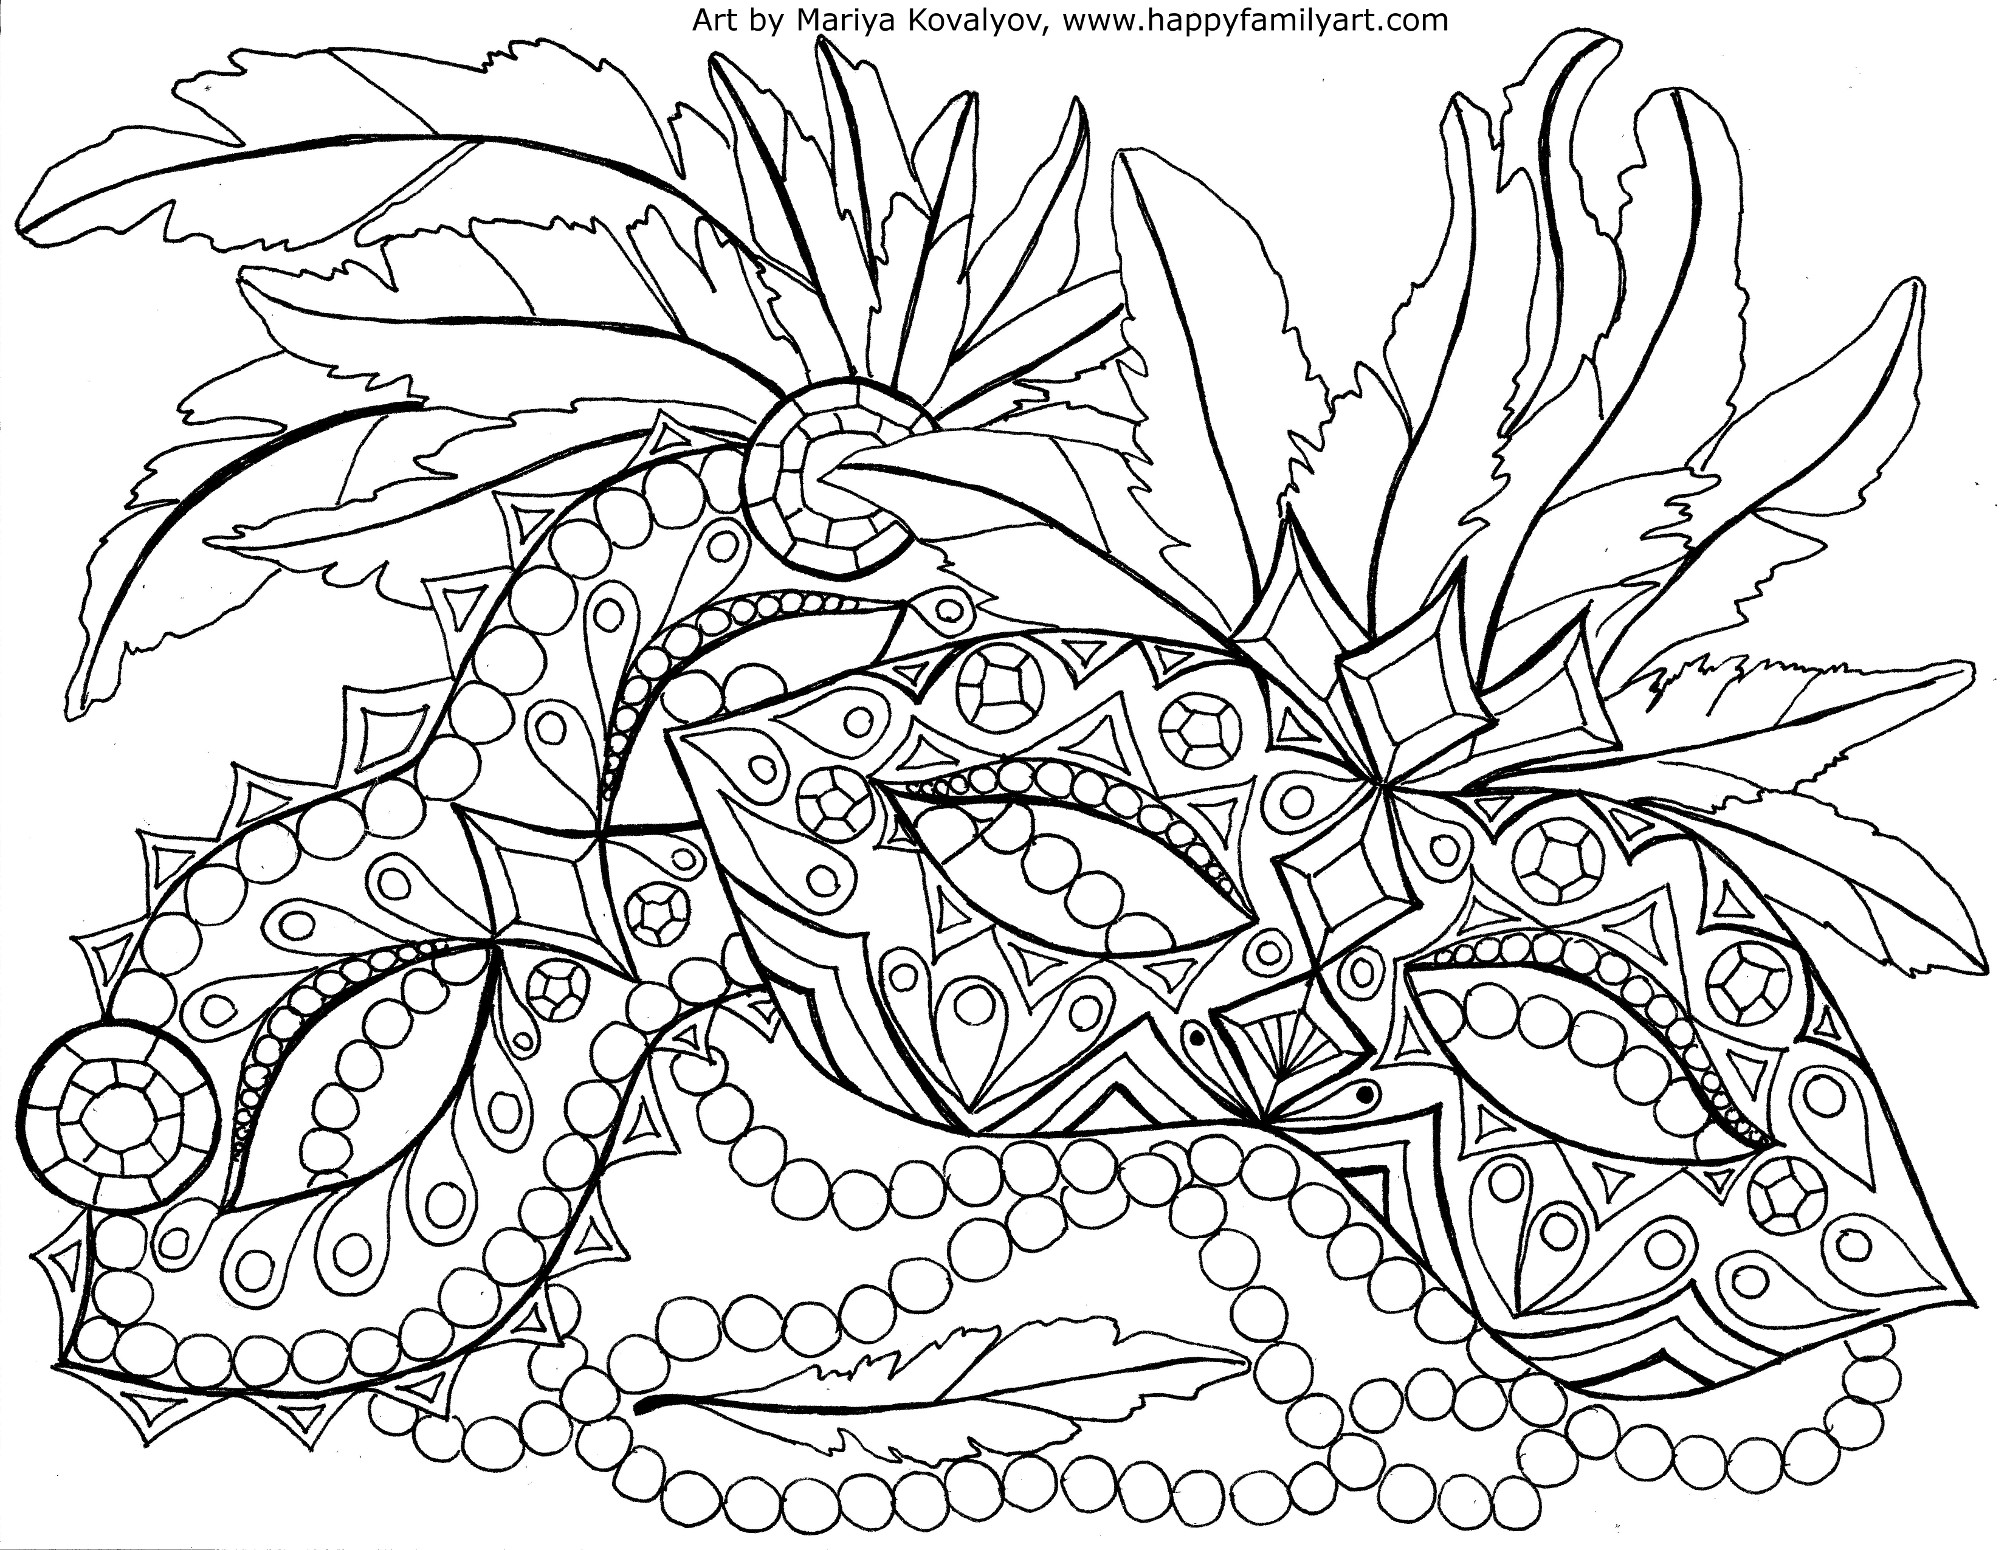 Masquerade Coloring Pages At Getdrawings Com Free For Personal Use